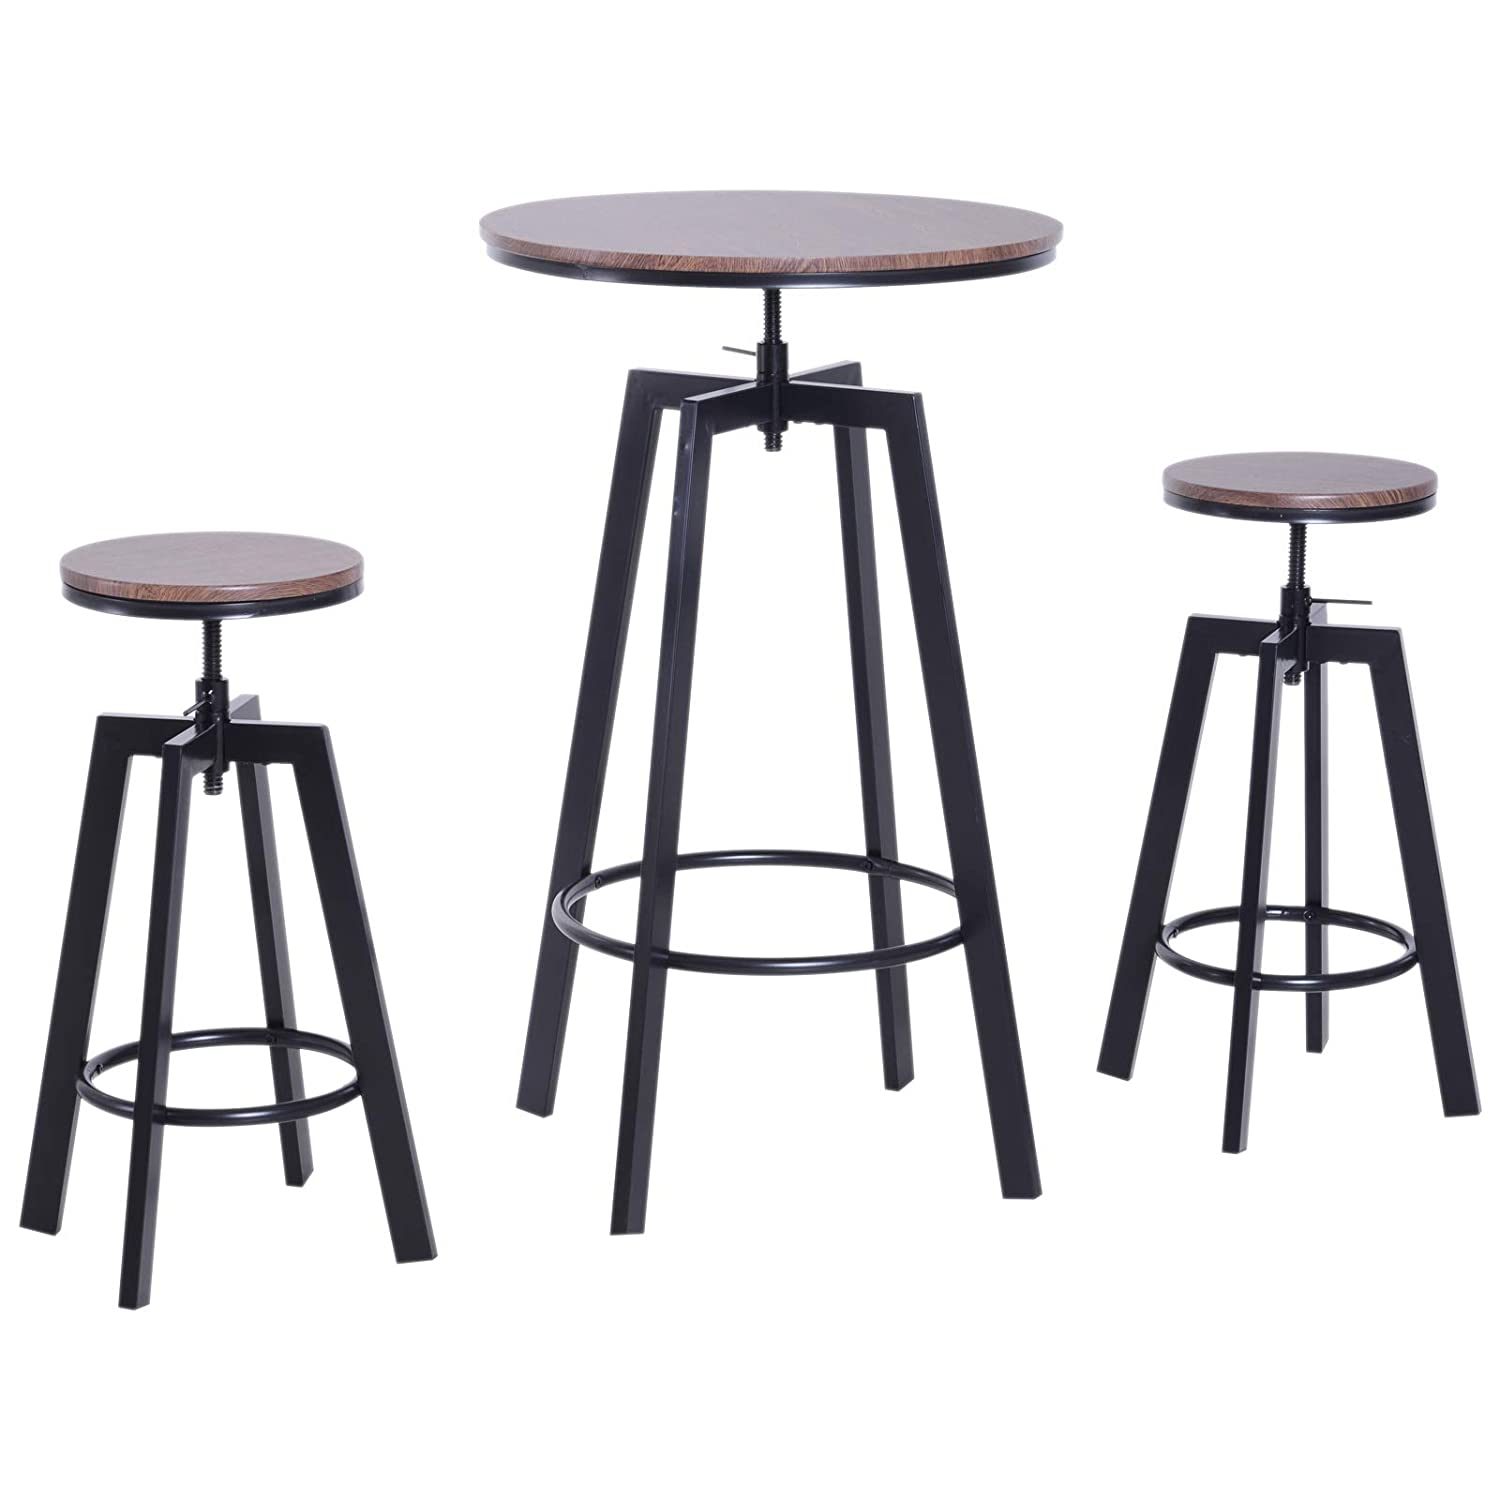 Admirable 3 Piece Bar Height Adjustable Industrial Modern Indoor Bistro Table Set Onthecornerstone Fun Painted Chair Ideas Images Onthecornerstoneorg